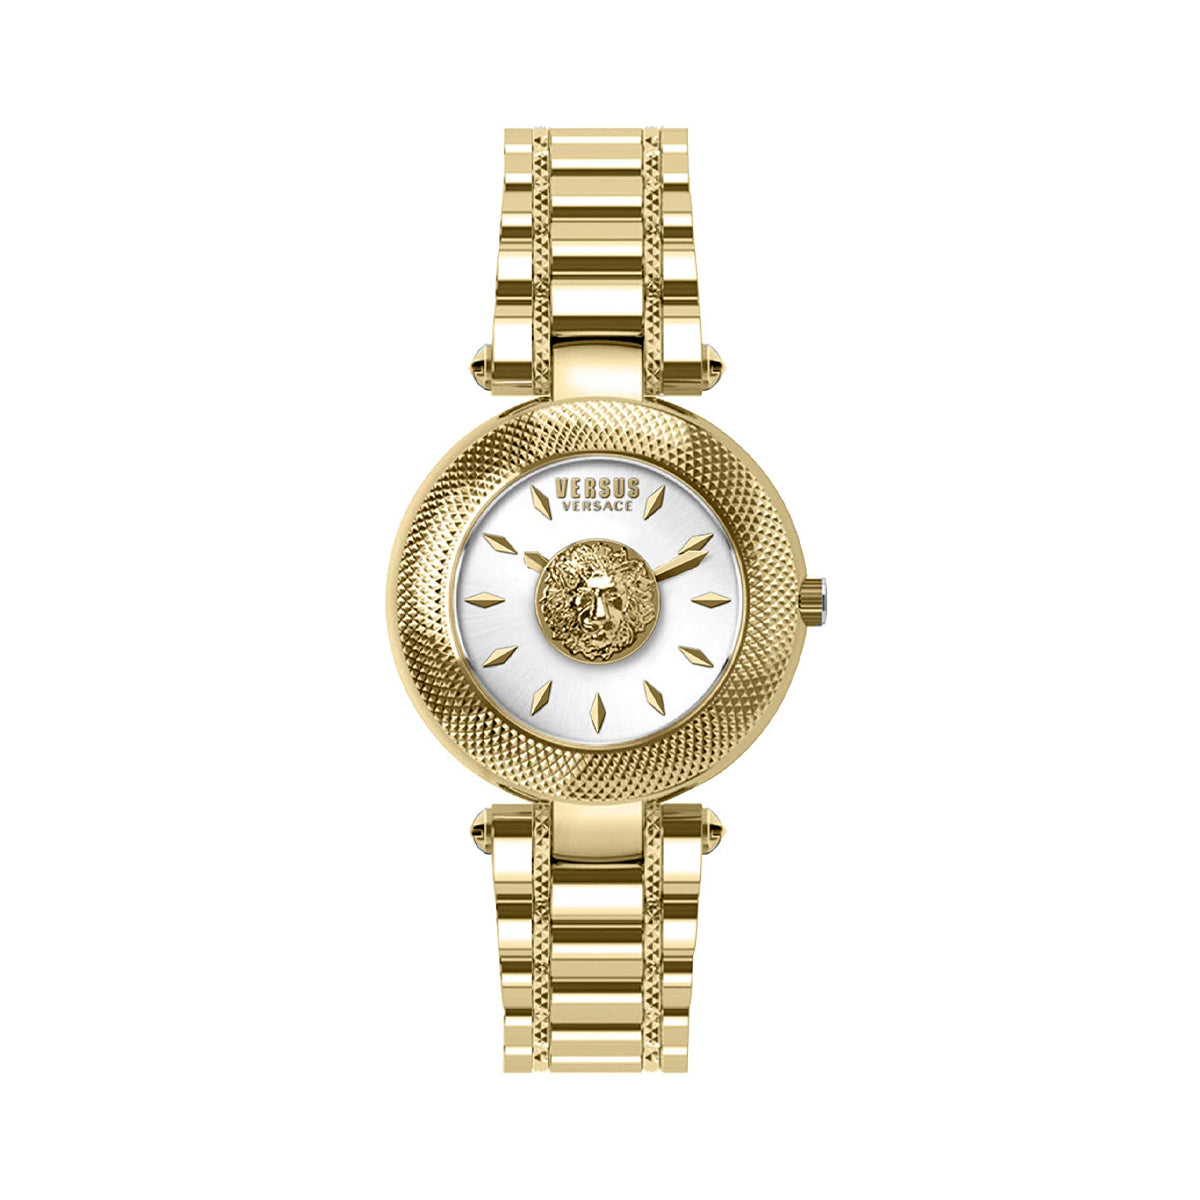 Versus Versace VSP214018 Brick Lane Ladies Watch